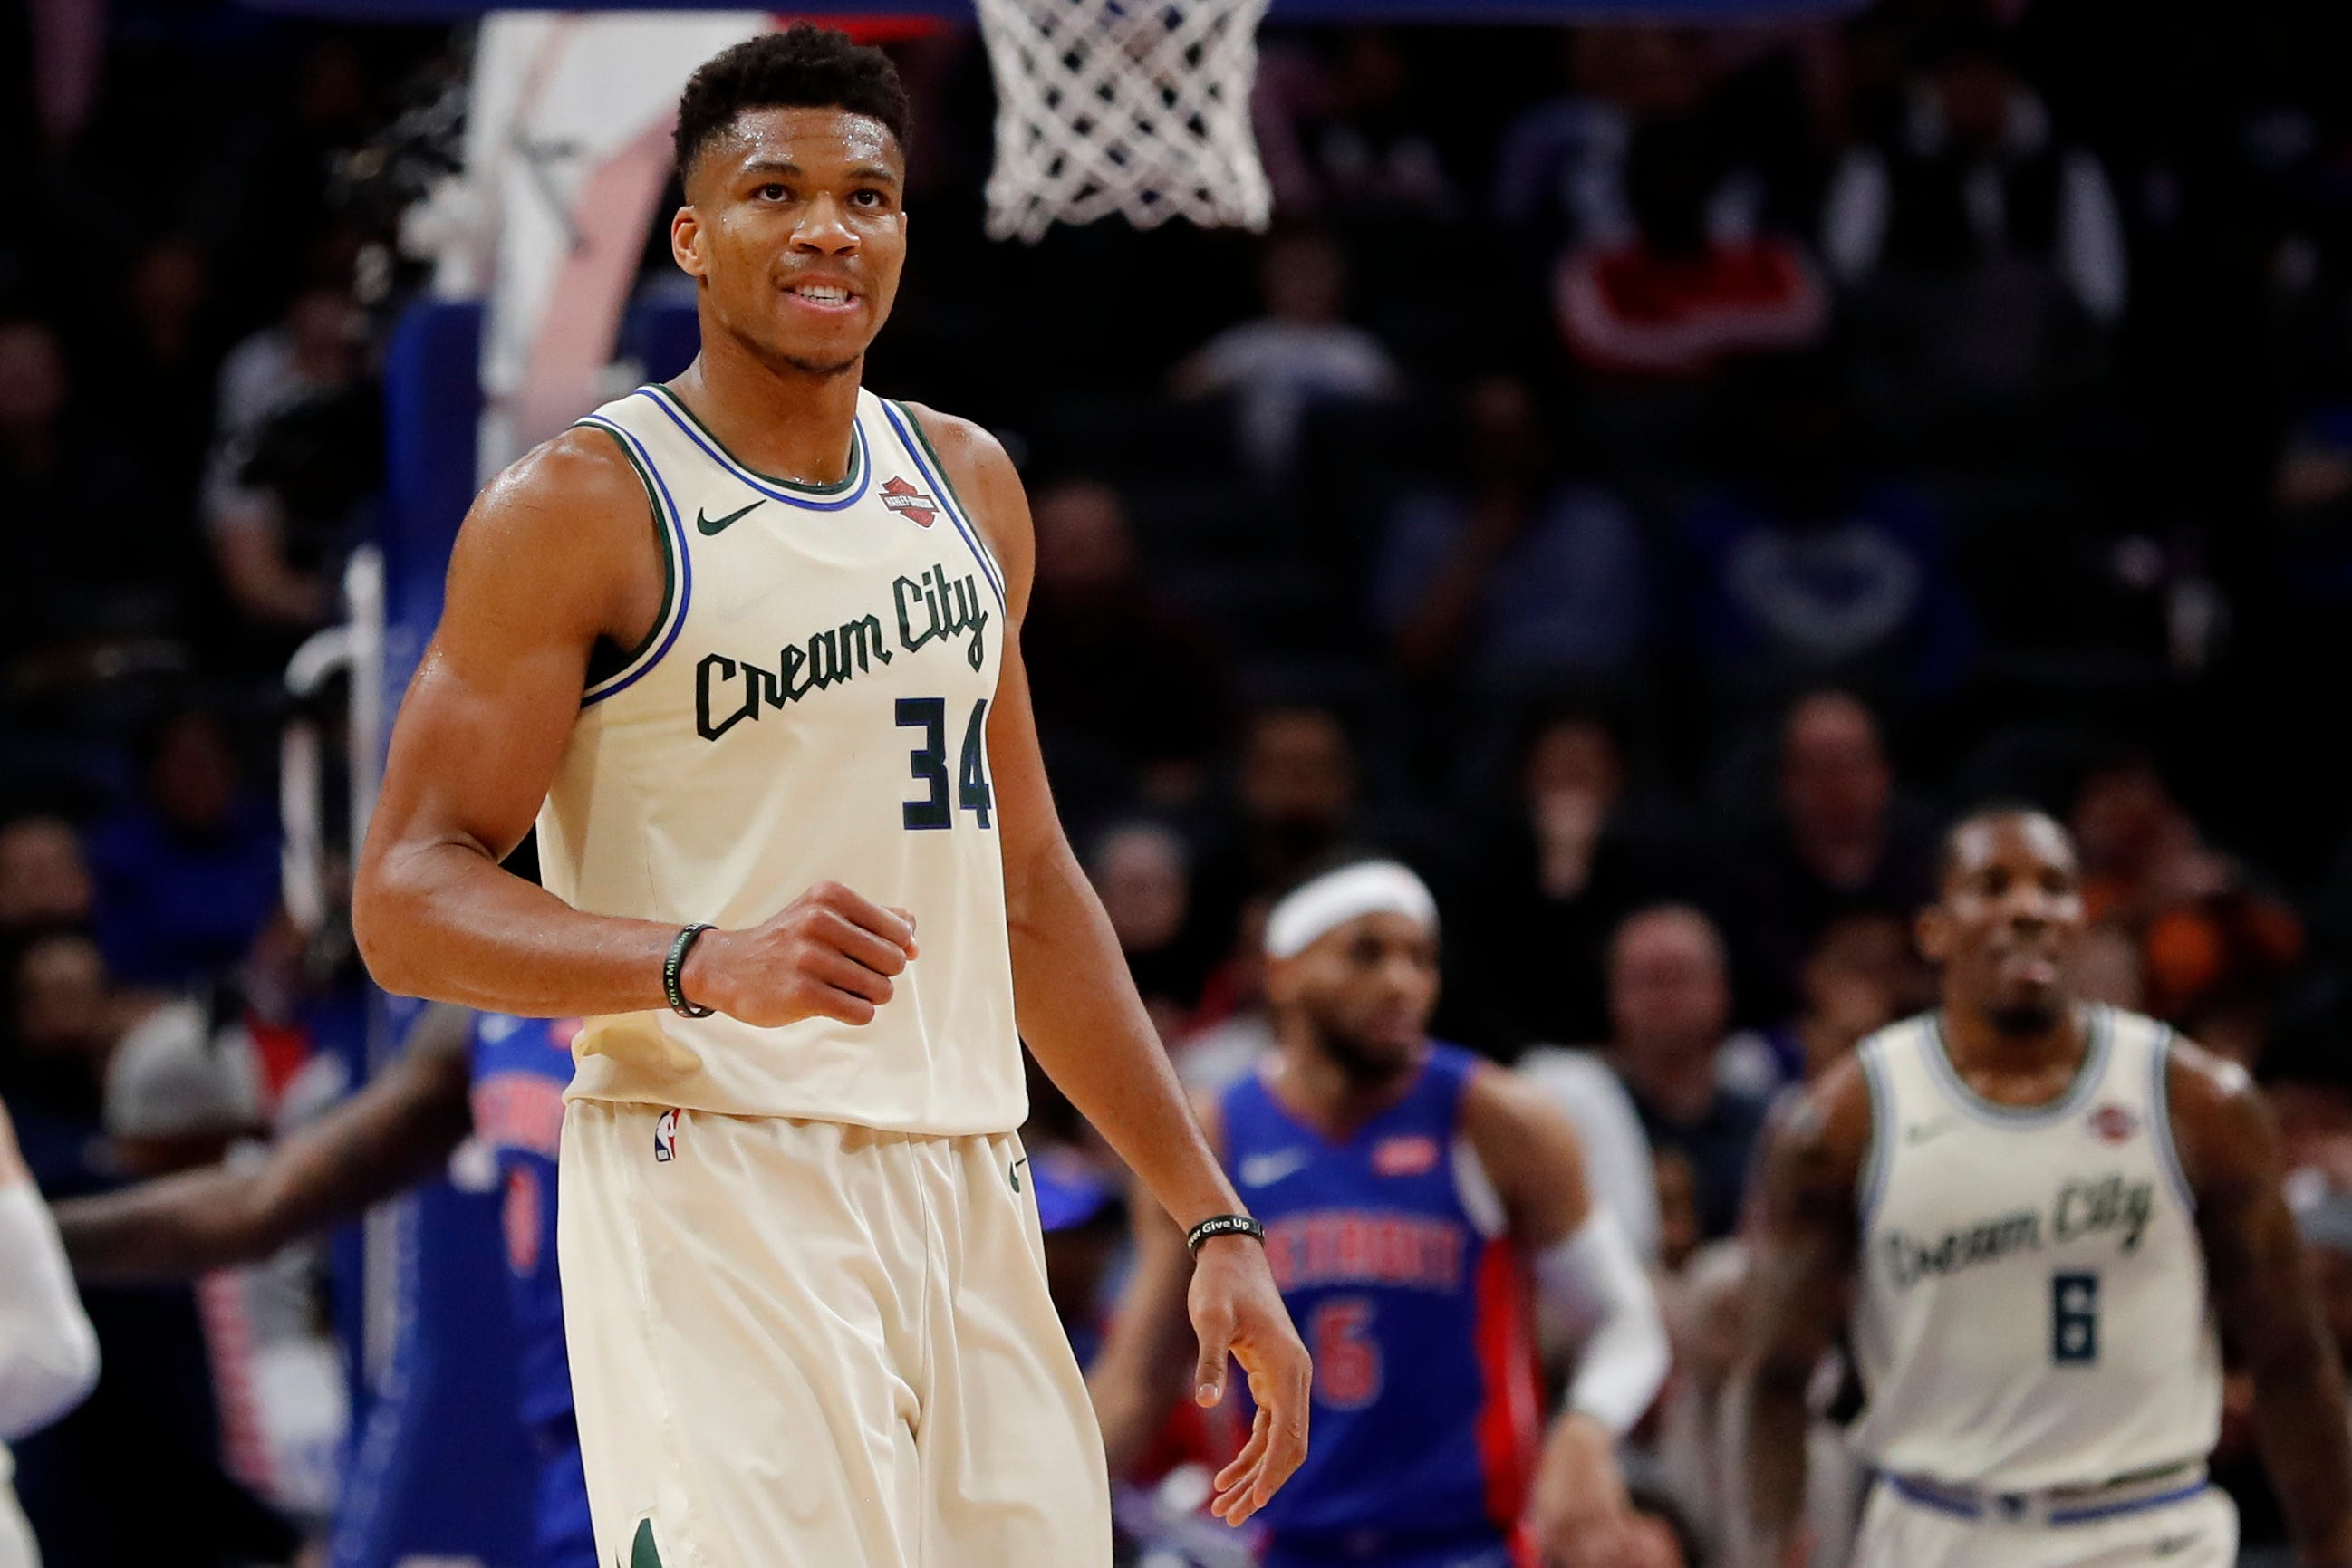 NBA hot topics: Is Giannis Antetokounmpo on repeat MVP path? Will Melo maintain momentum?